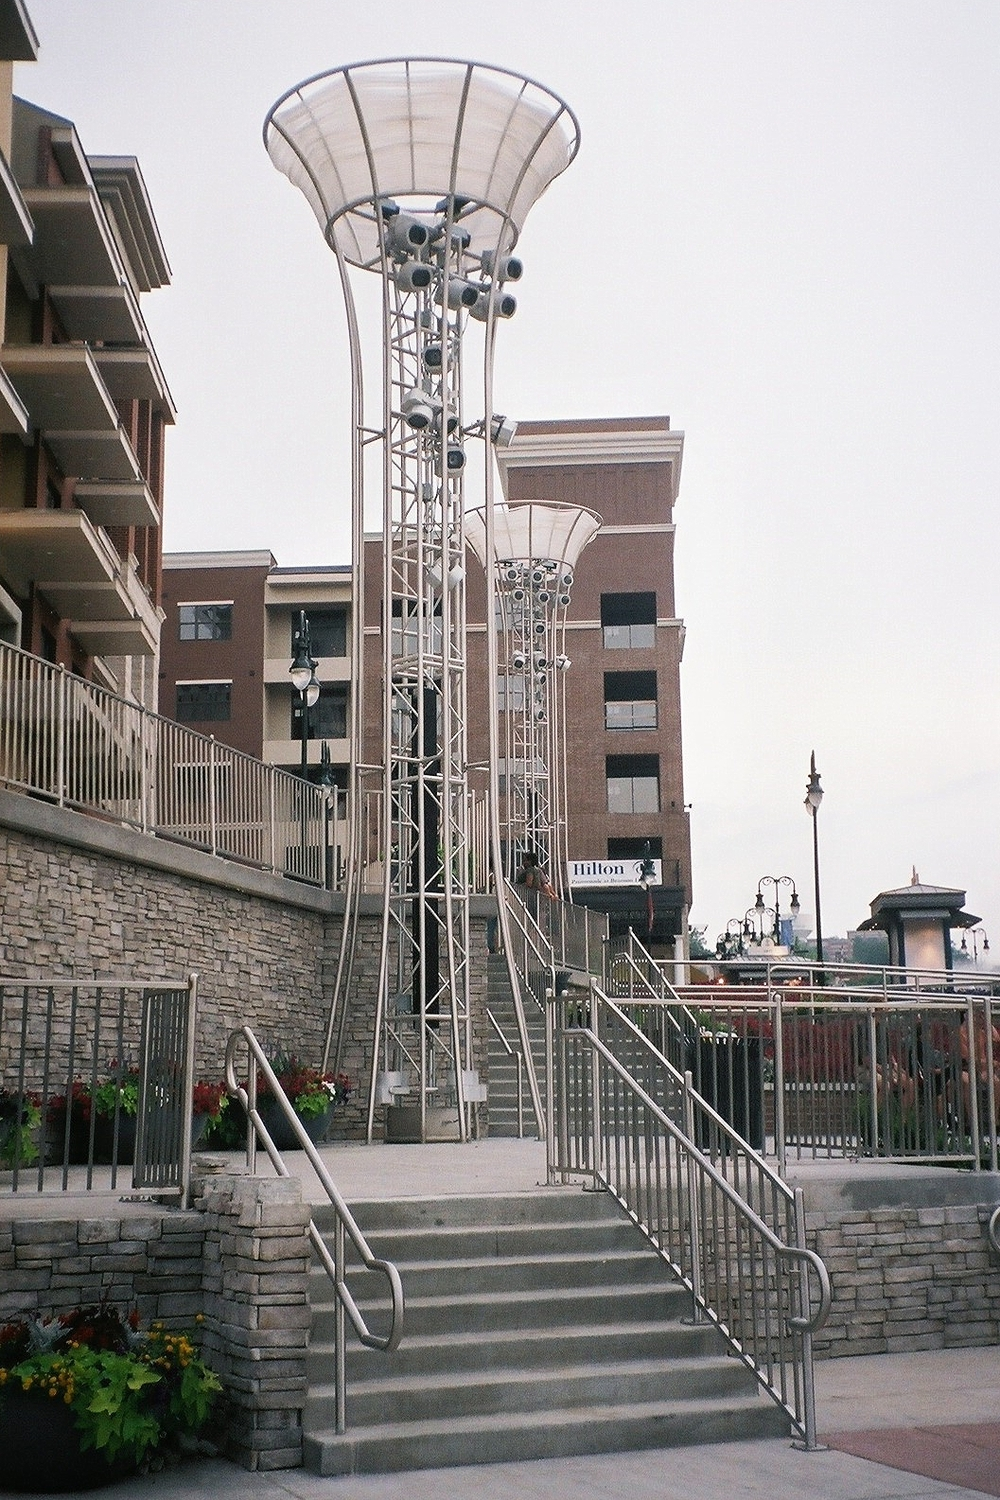 Stainless Steel Light Towers and Railing